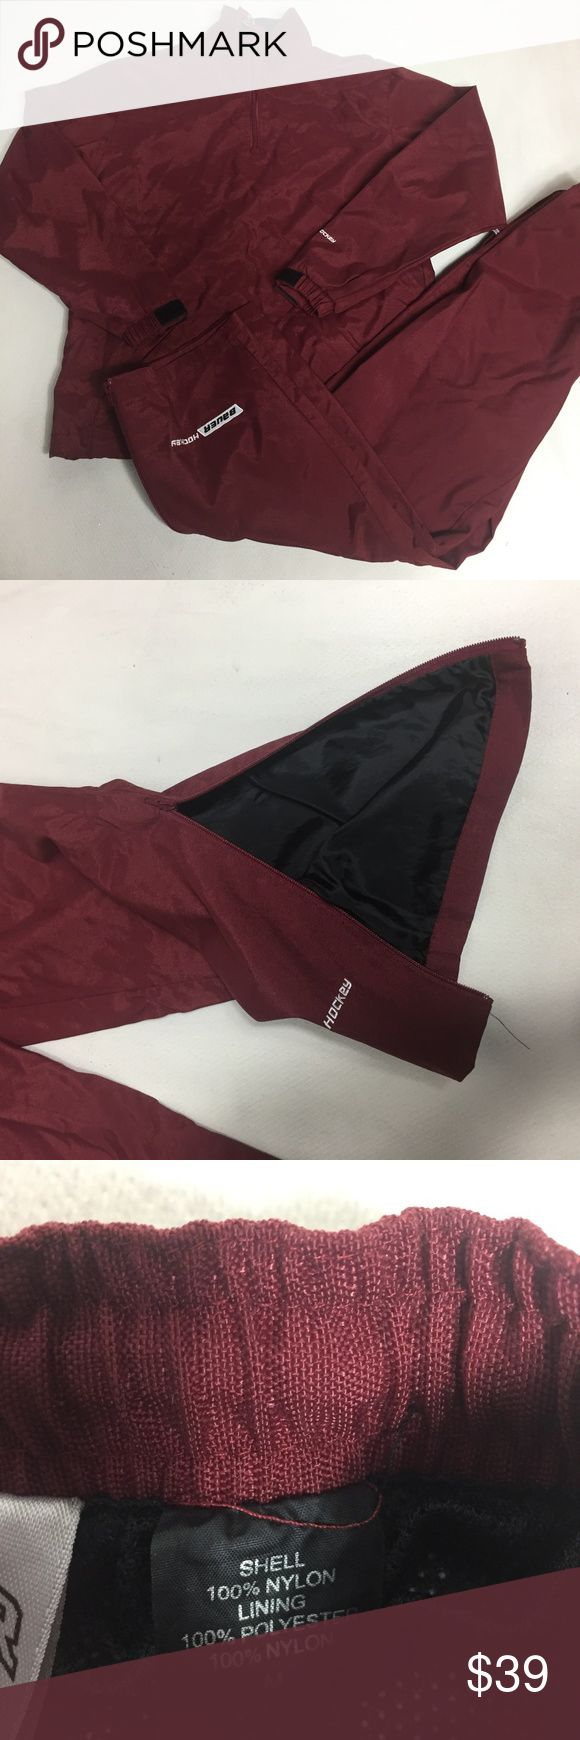 Bauer Hockey Boys Training Set Jacket Pants Lined Hockey Boys Training Set Jacket Pants Windbreaker Lined  Size M Maroon (will fit 12-14 years old)   in new condition  A6209kt10 Bauer Other